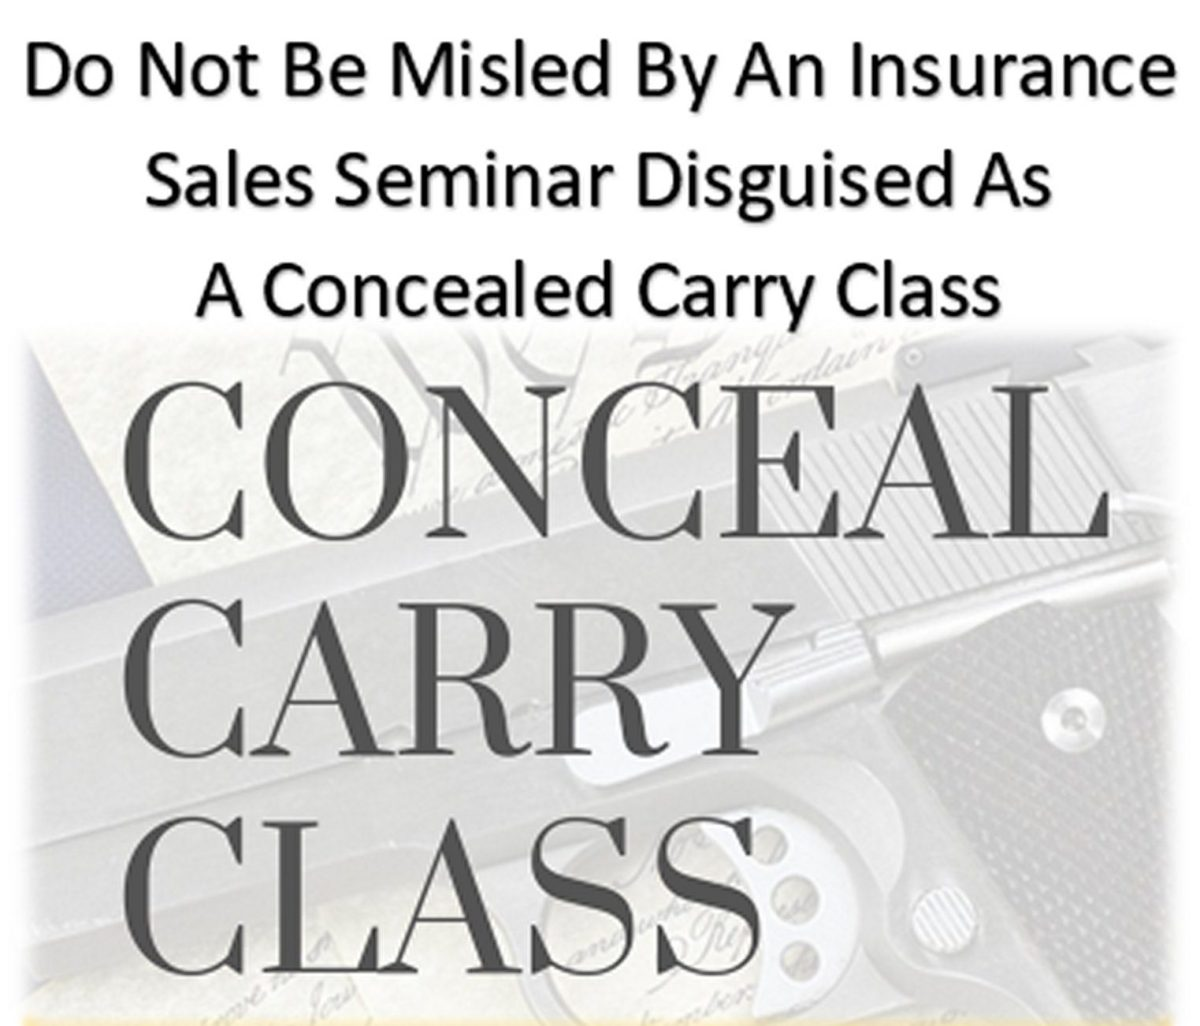 Do Not Be Misled By An Insurance Sales Seminar Disguised As A Concealed Carry Class